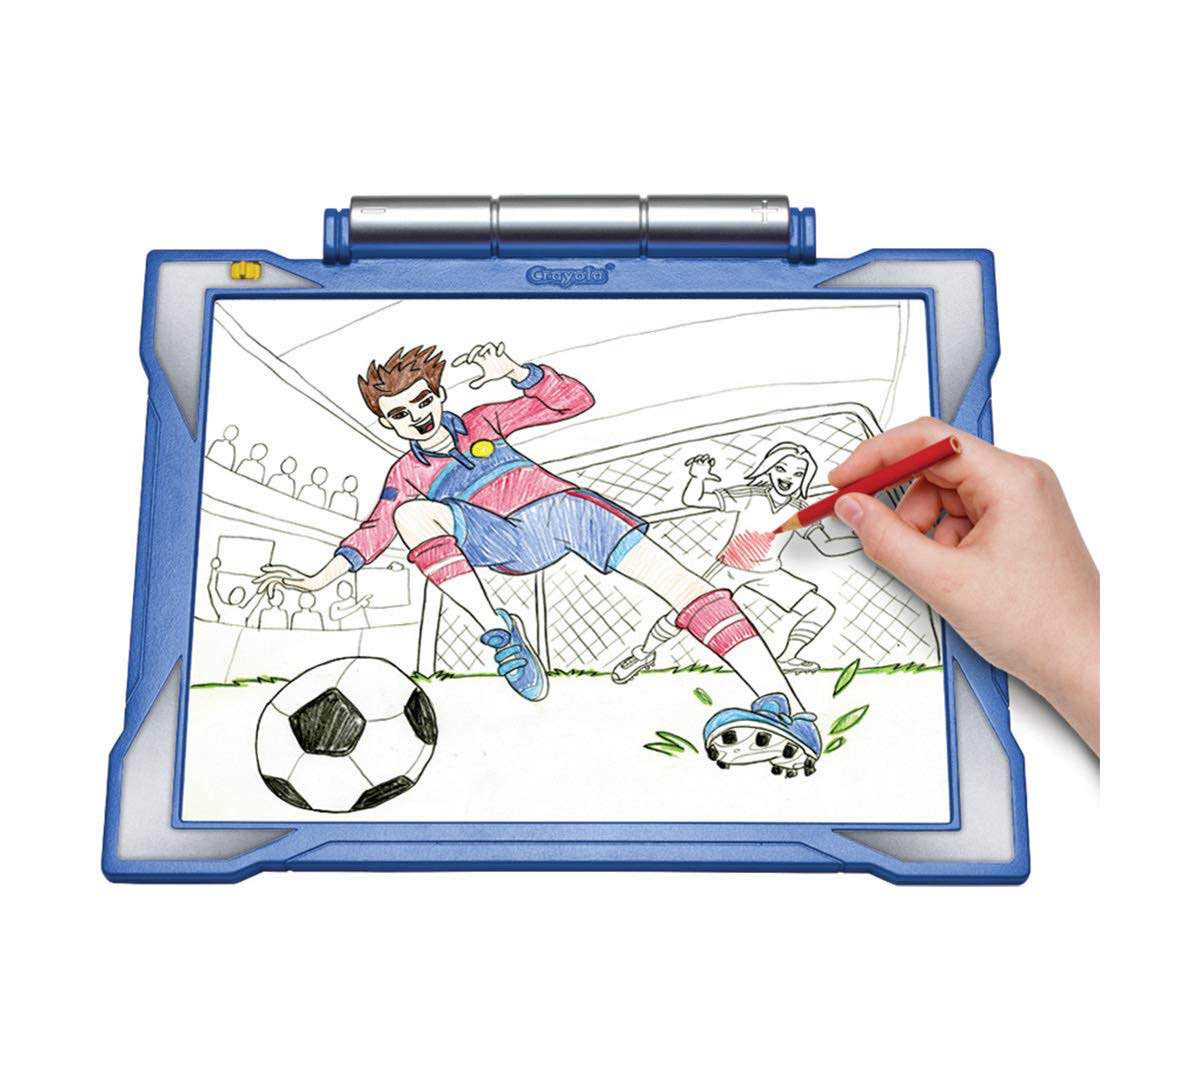 Crayola Light-up Tracing Pad in Blue